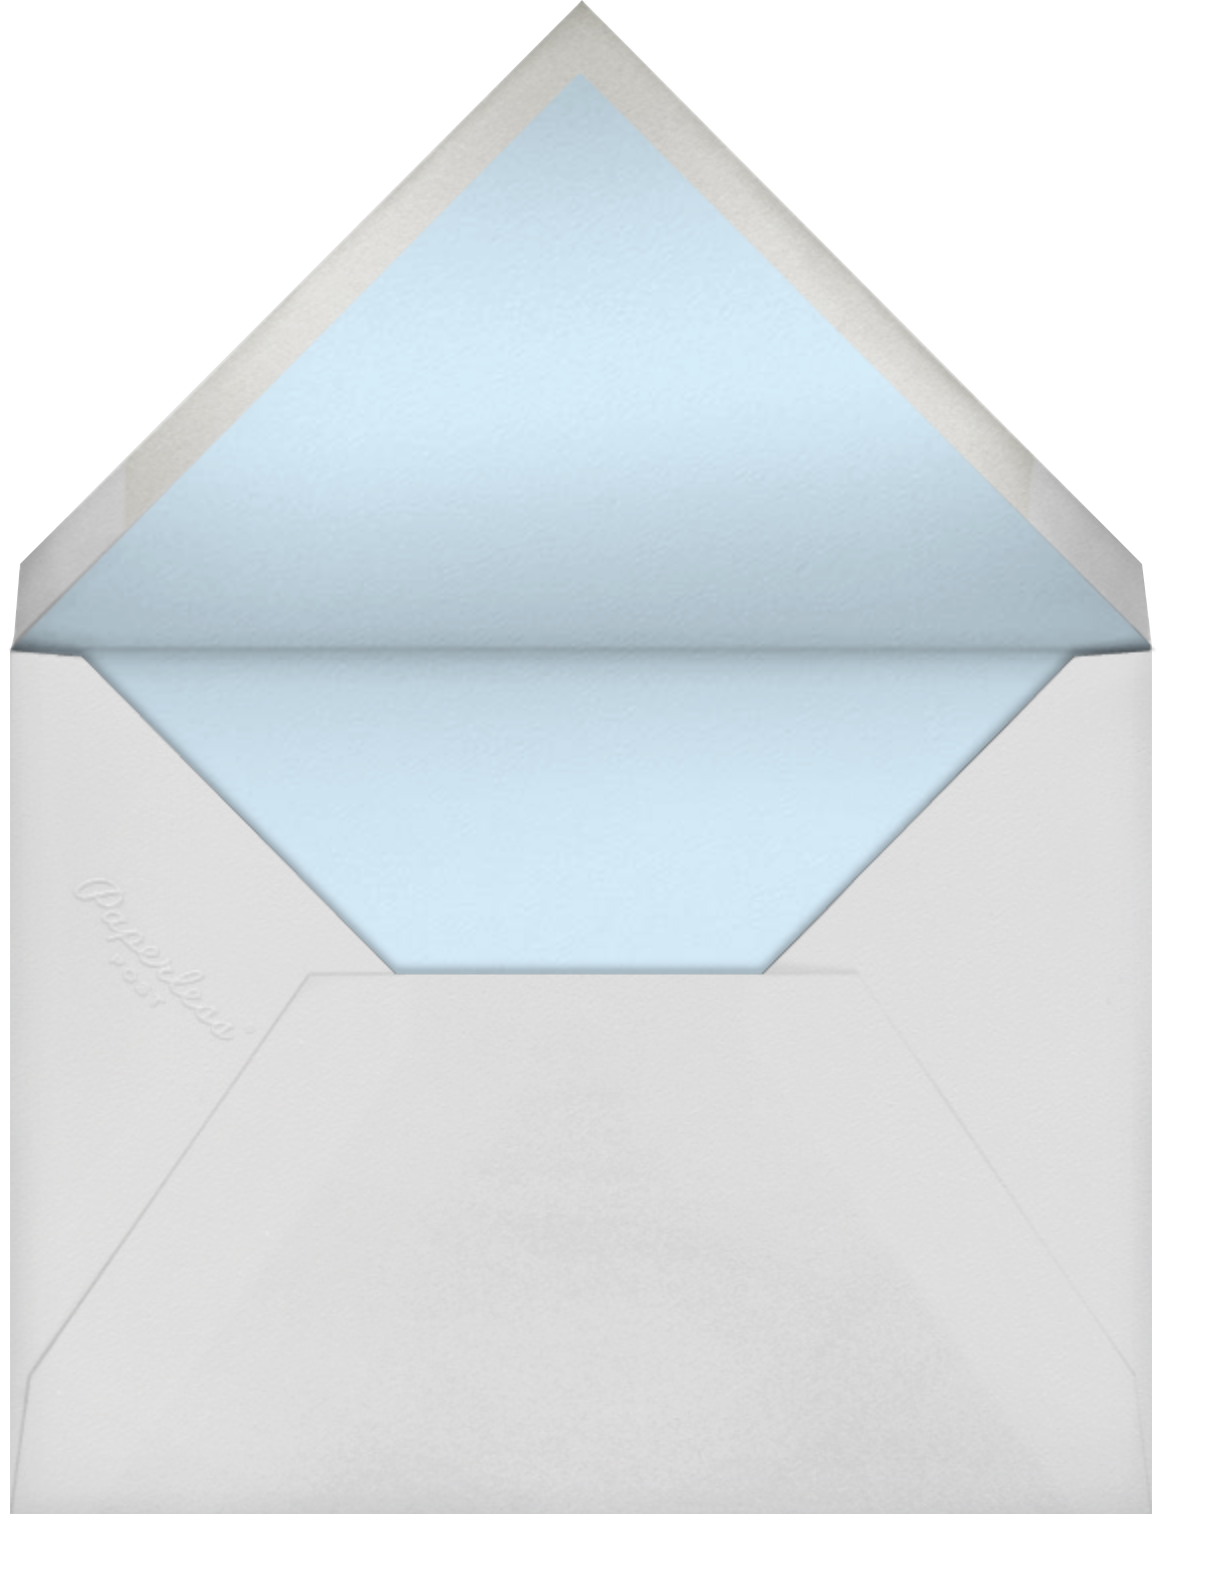 Merry and Married - Gold - Paperless Post - Envelope